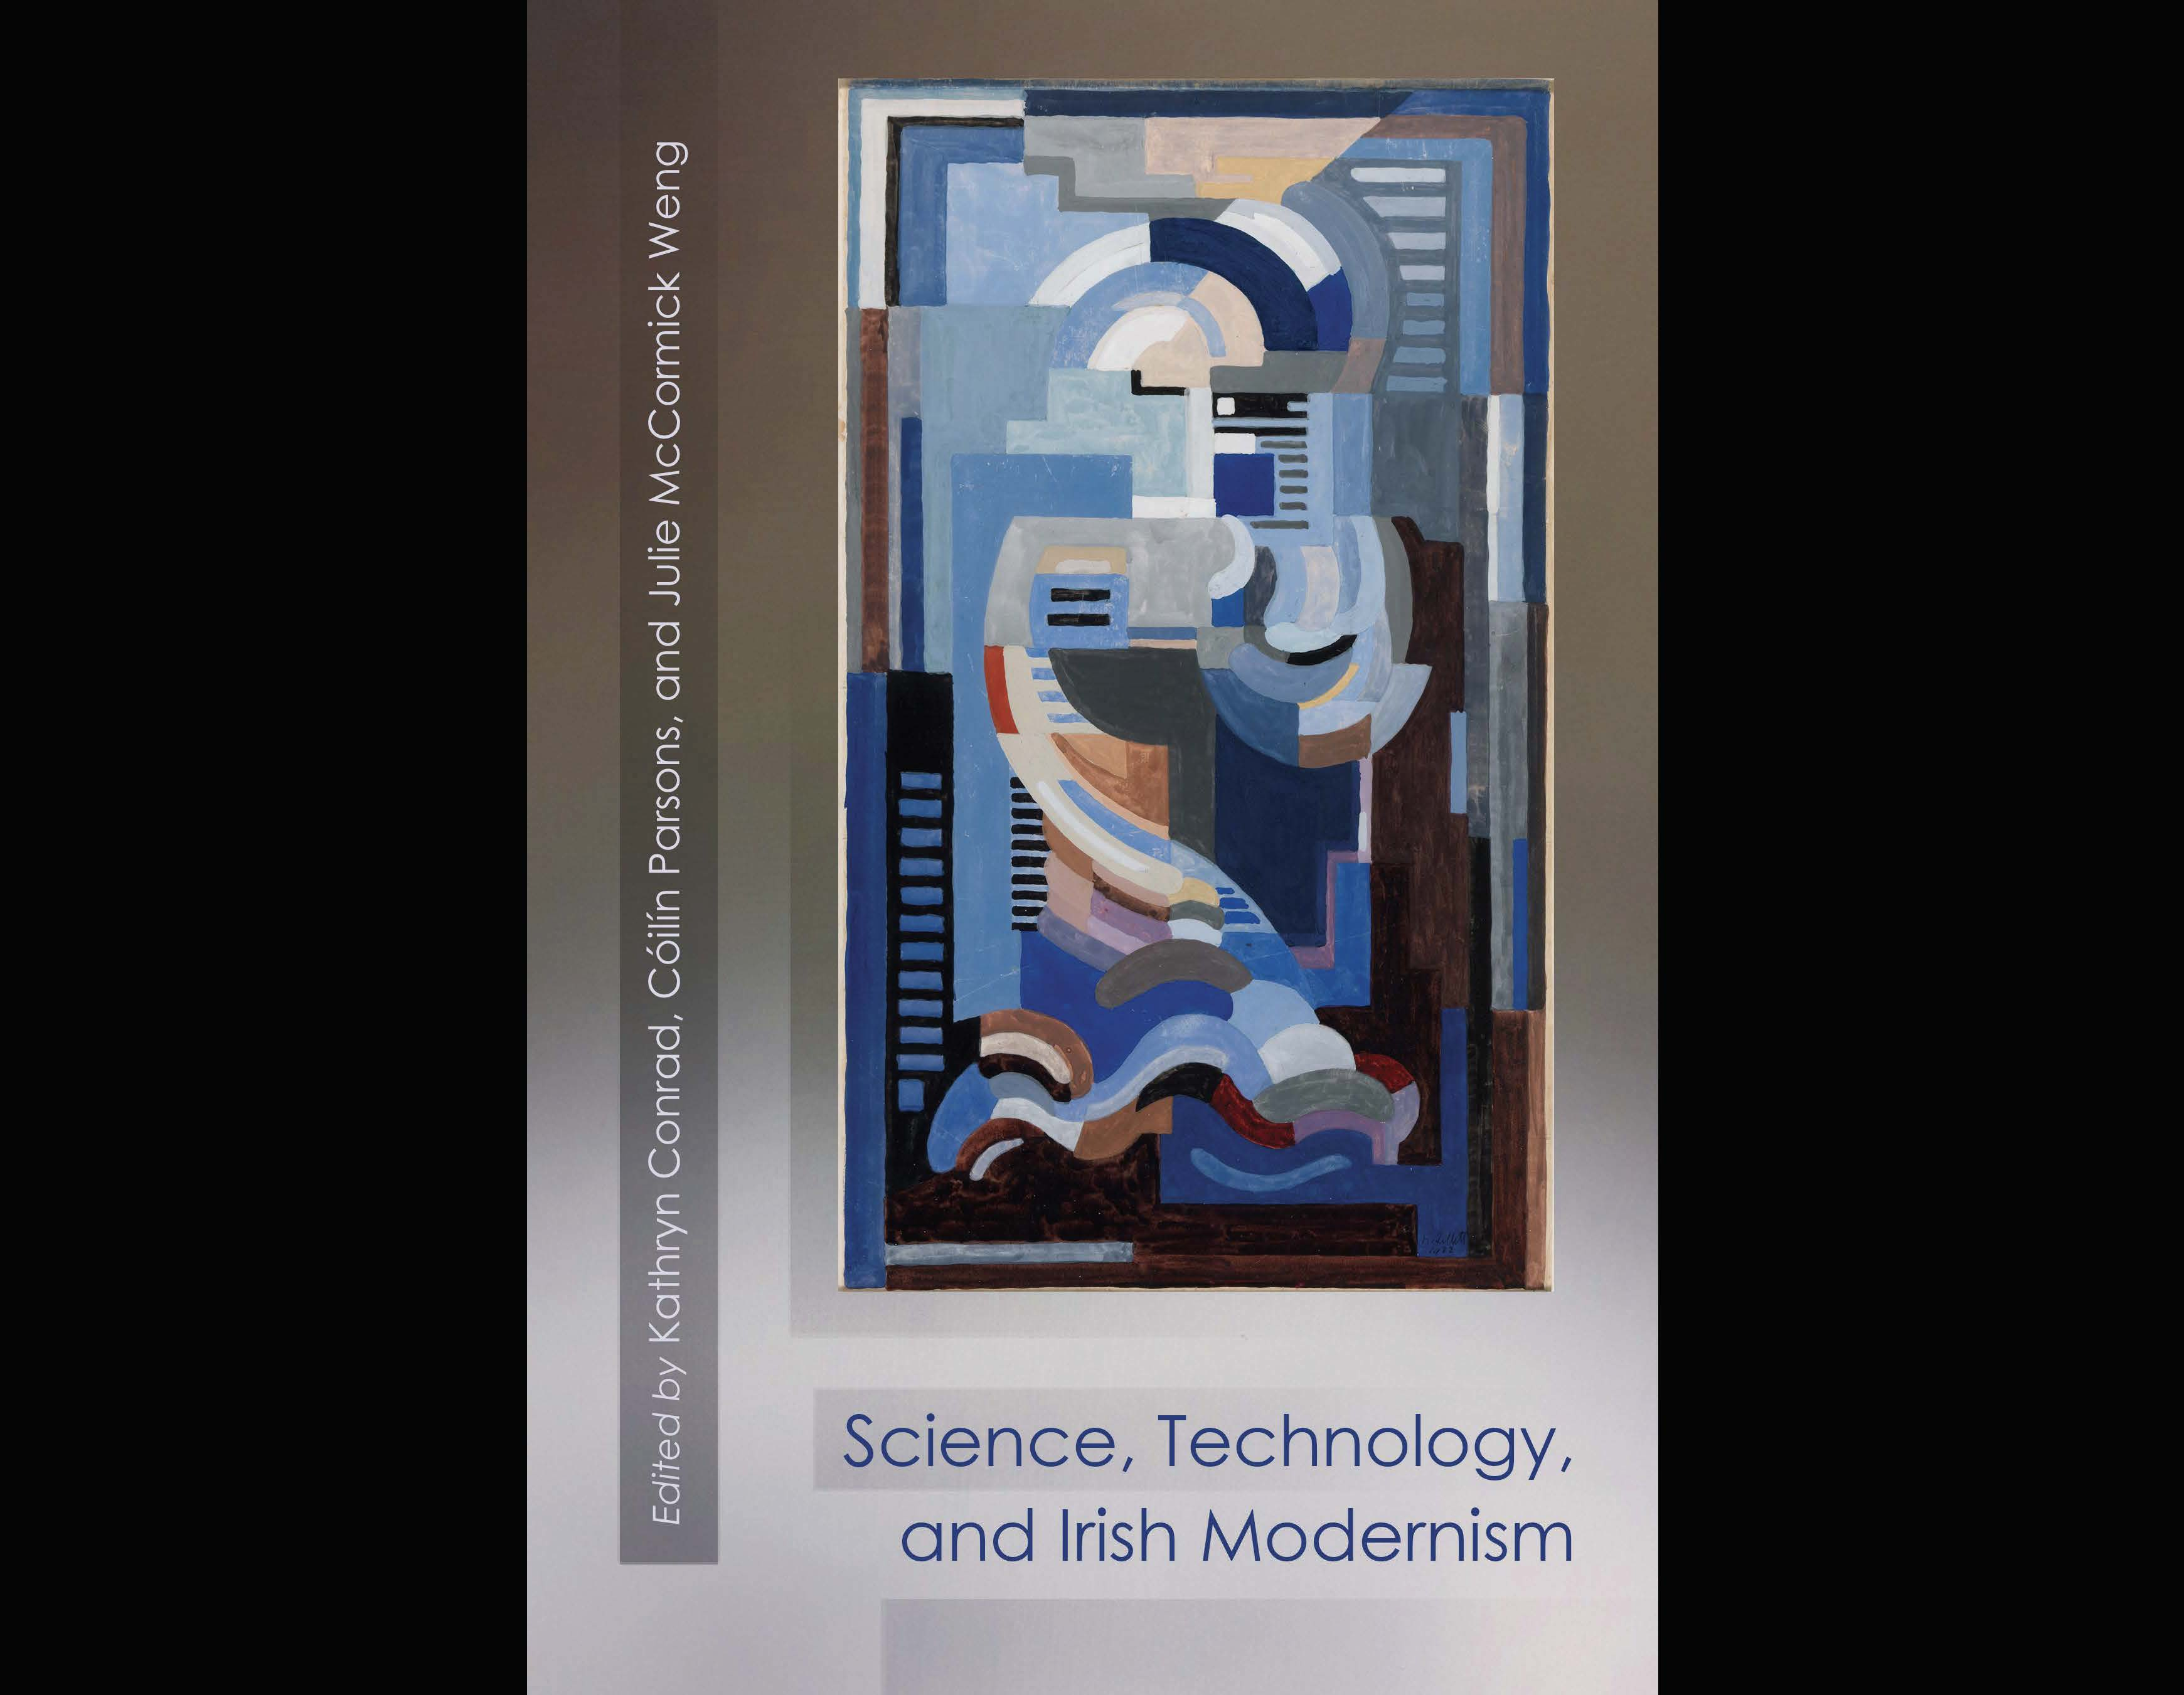 Science Technology and Irish Modernism Book Cover